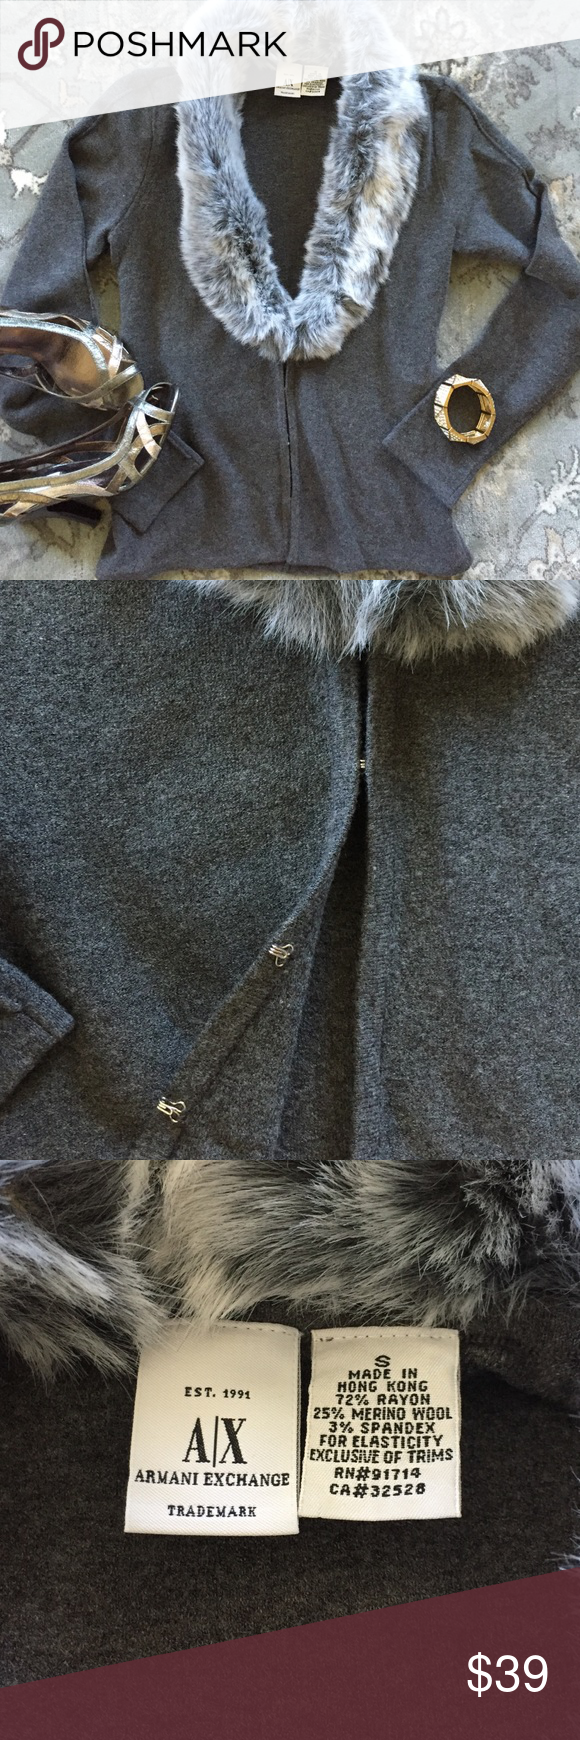 A/X Armani Exchange Faux Fur Collar Cardigan Love, love, love this beautiful gray fitted cardigan. Perfect for all occasions like casual weekends, holidays, or even dress up. Collar is detachable. There is a loop for a belt however never used it do not recall it coming with one....see pic. Can use a skinny belt if like. Size small. Sweaters